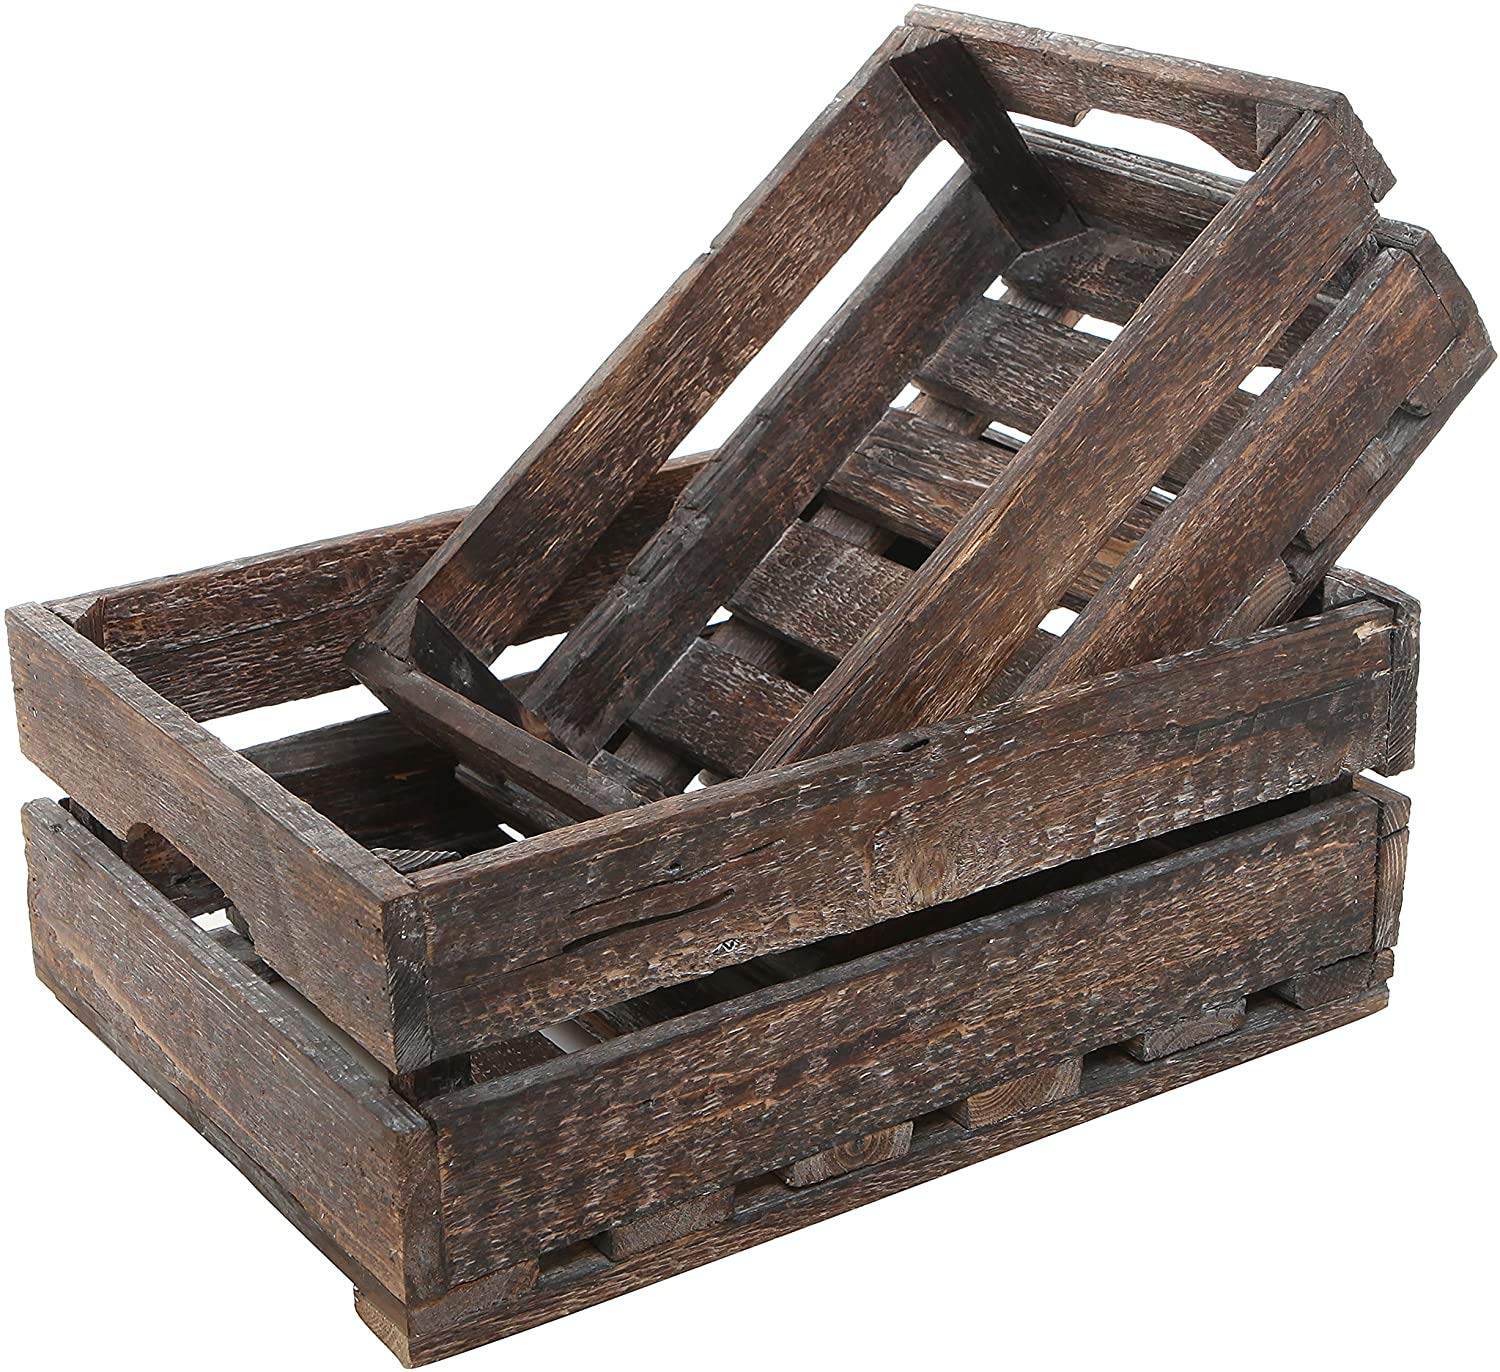 MyGift Distressed Gray Wood Nesting Boxes Set of 2 Storage Crates w//Handles